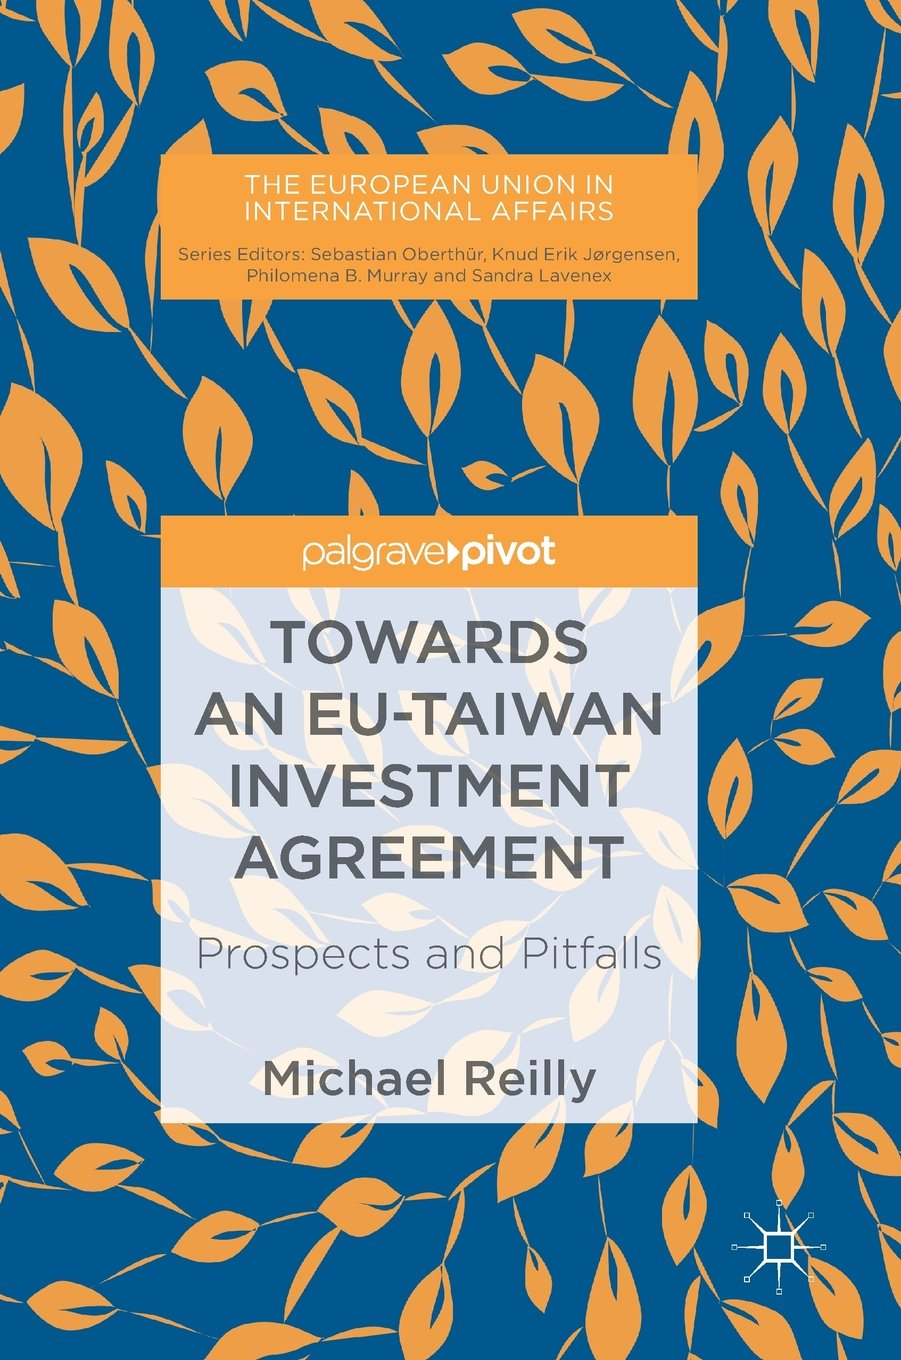 Read Online Towards an EU-Taiwan Investment Agreement: Prospects and Pitfalls (The European Union in International Affairs) pdf